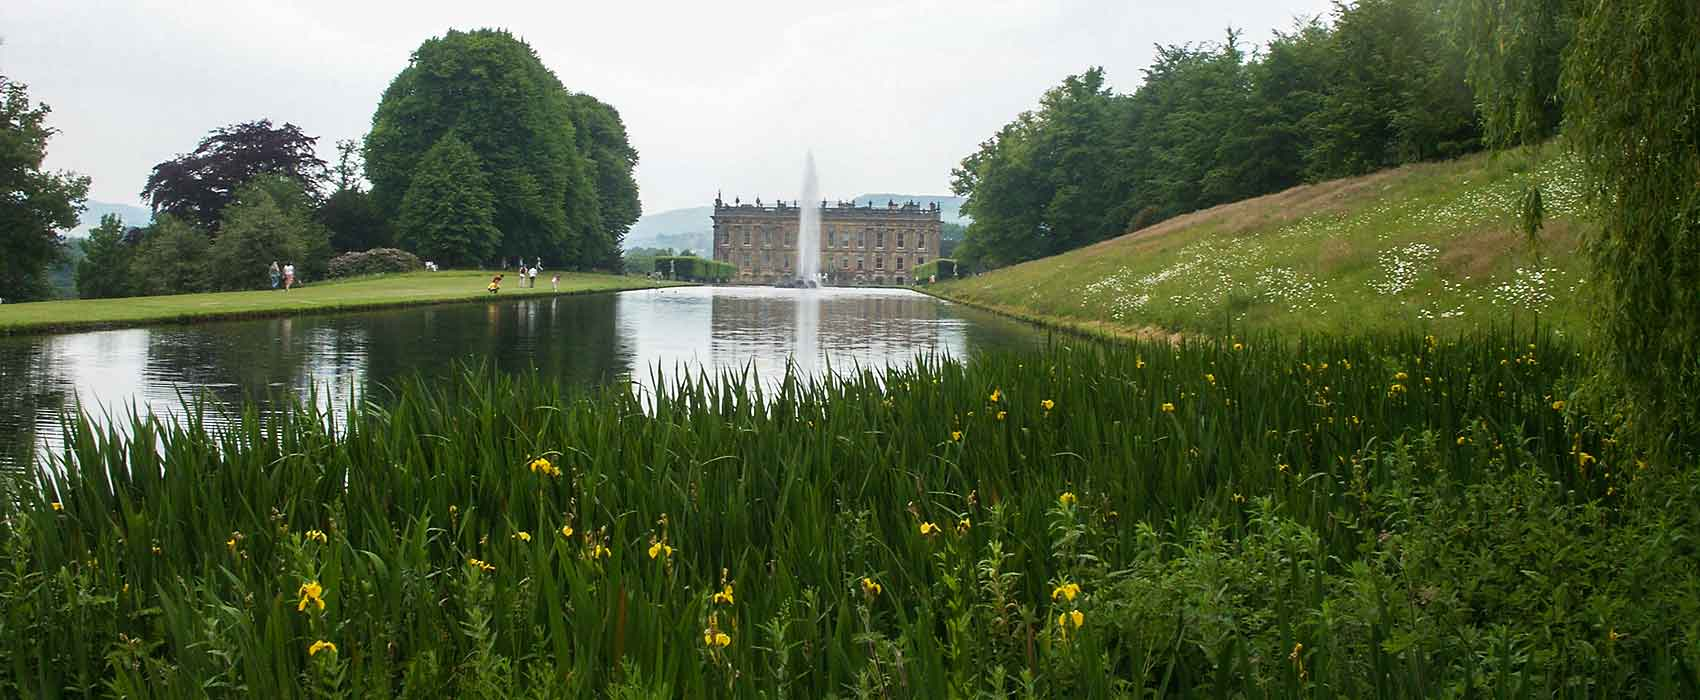 Chatsworth across the lake with daffodils in the foreground